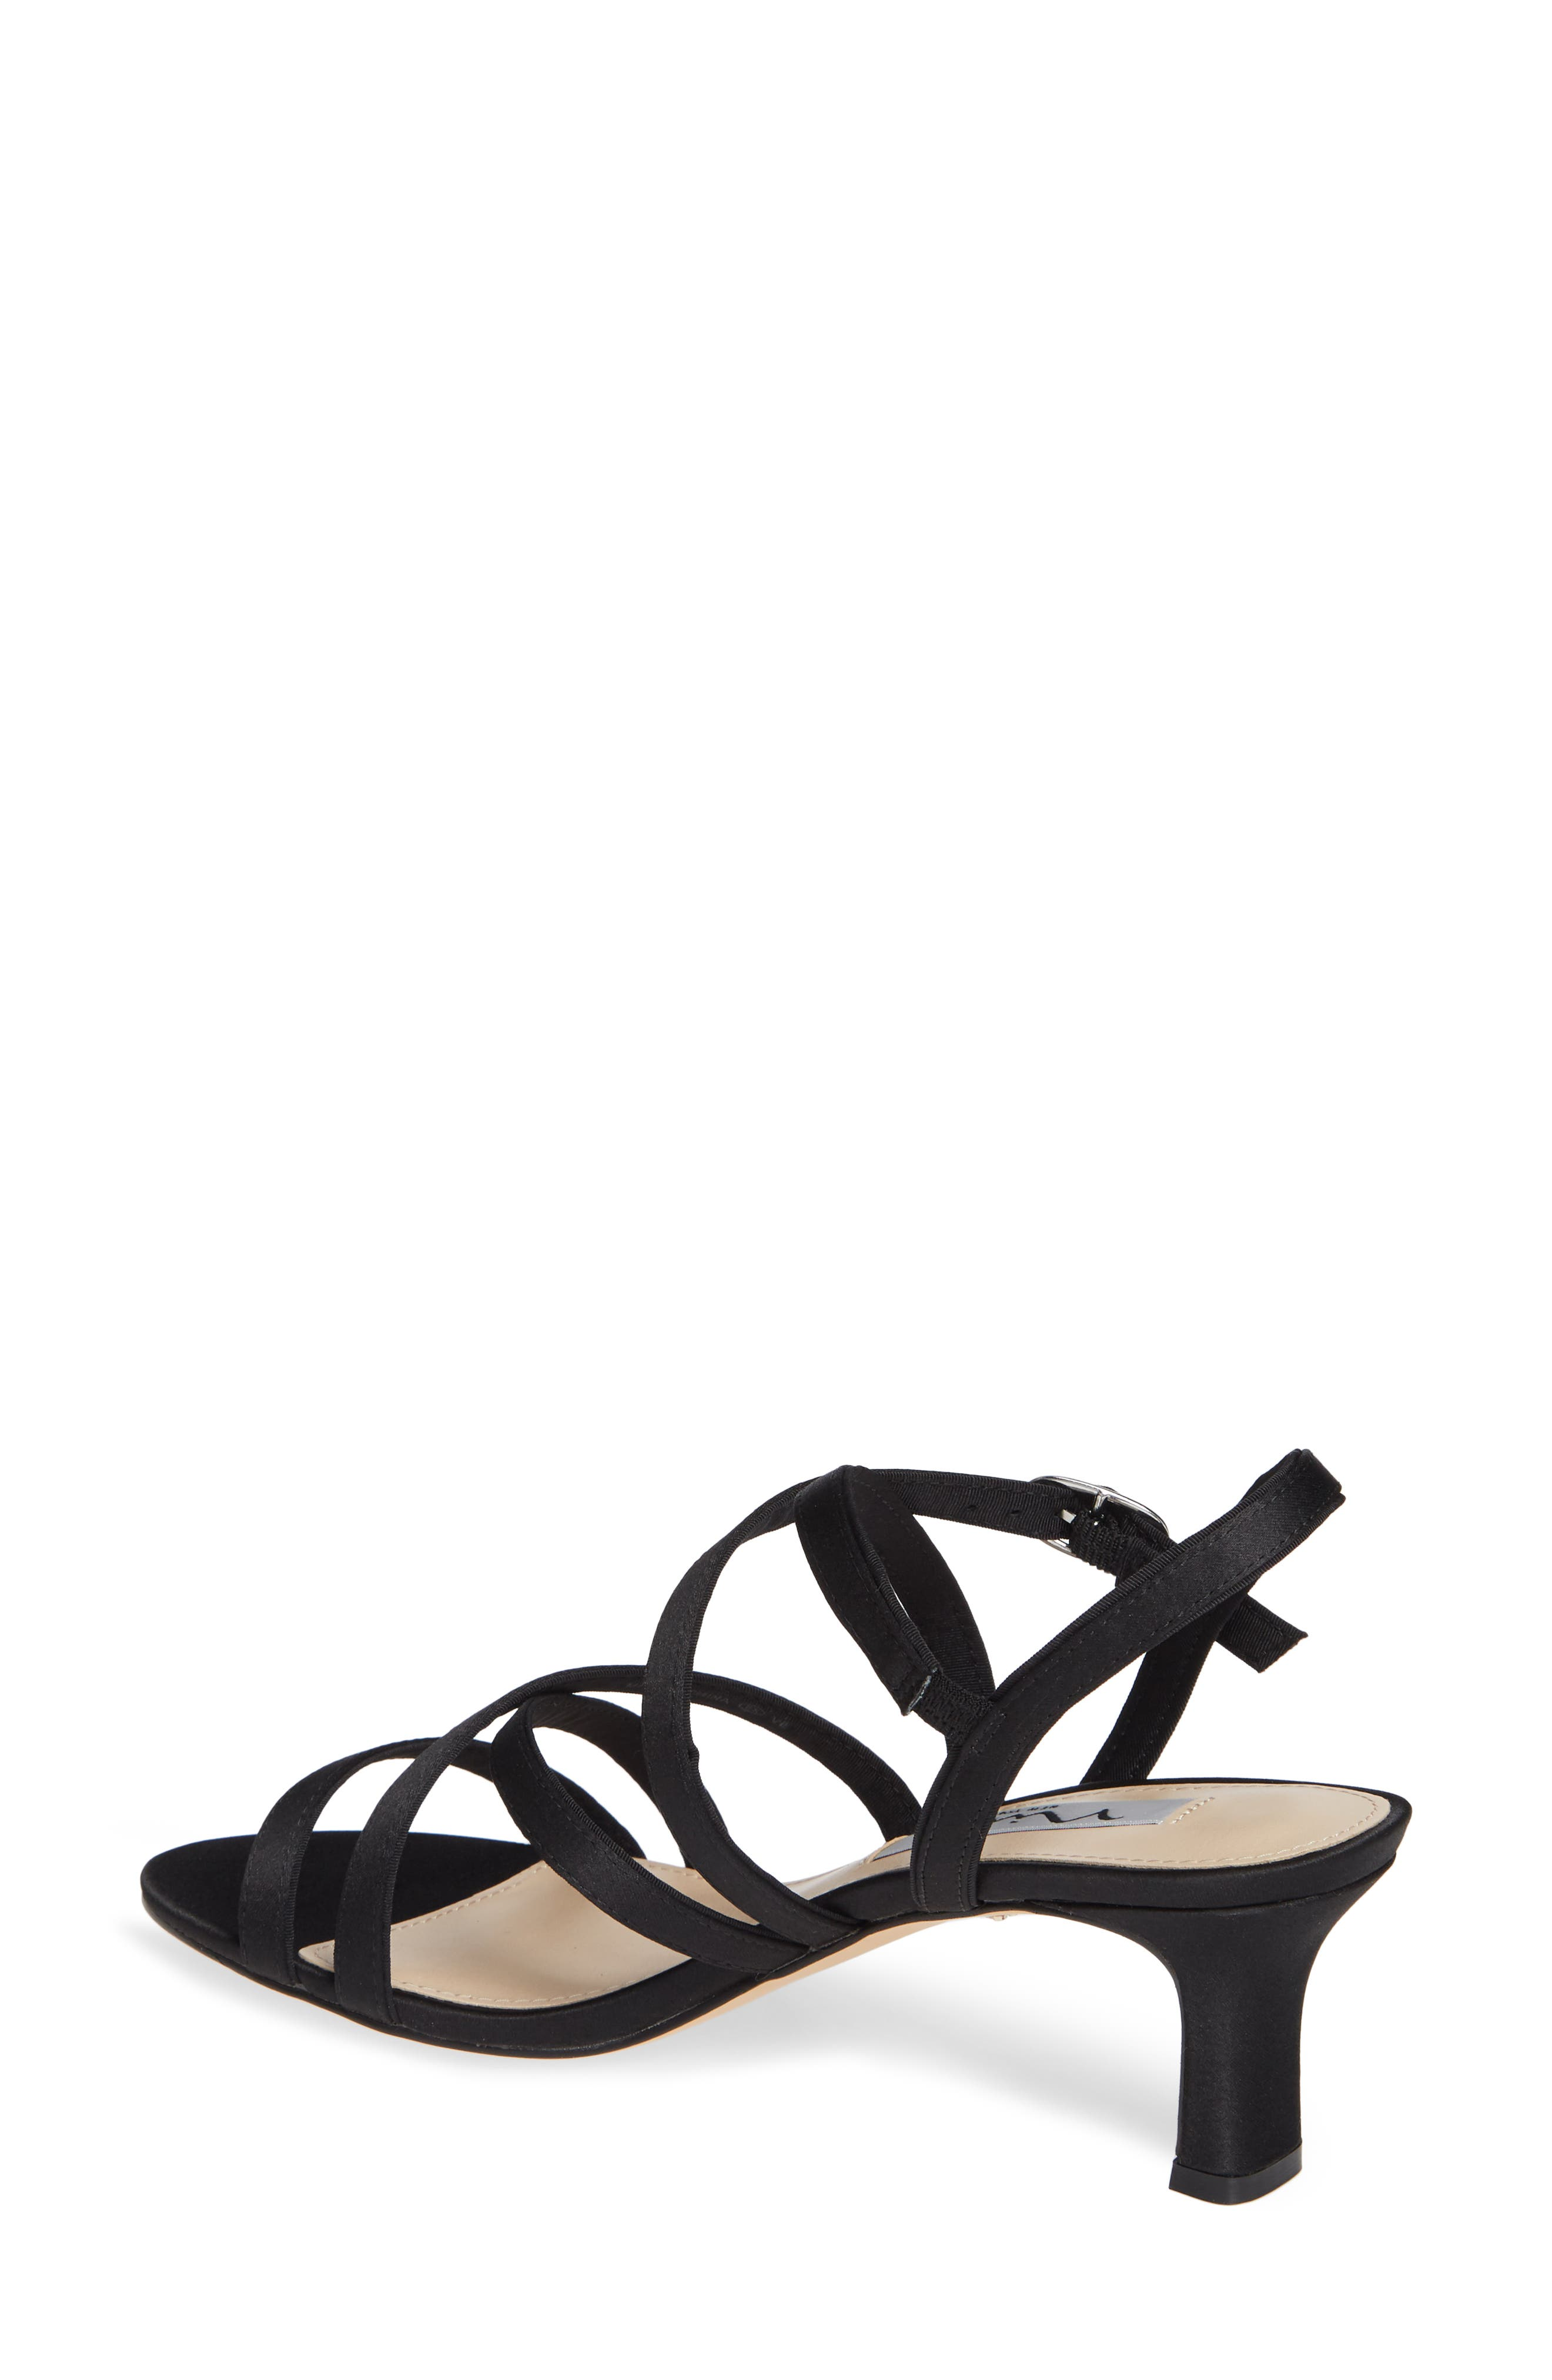 Genaya Strappy Evening Sandal,                             Alternate thumbnail 2, color,                             BLACK SATIN